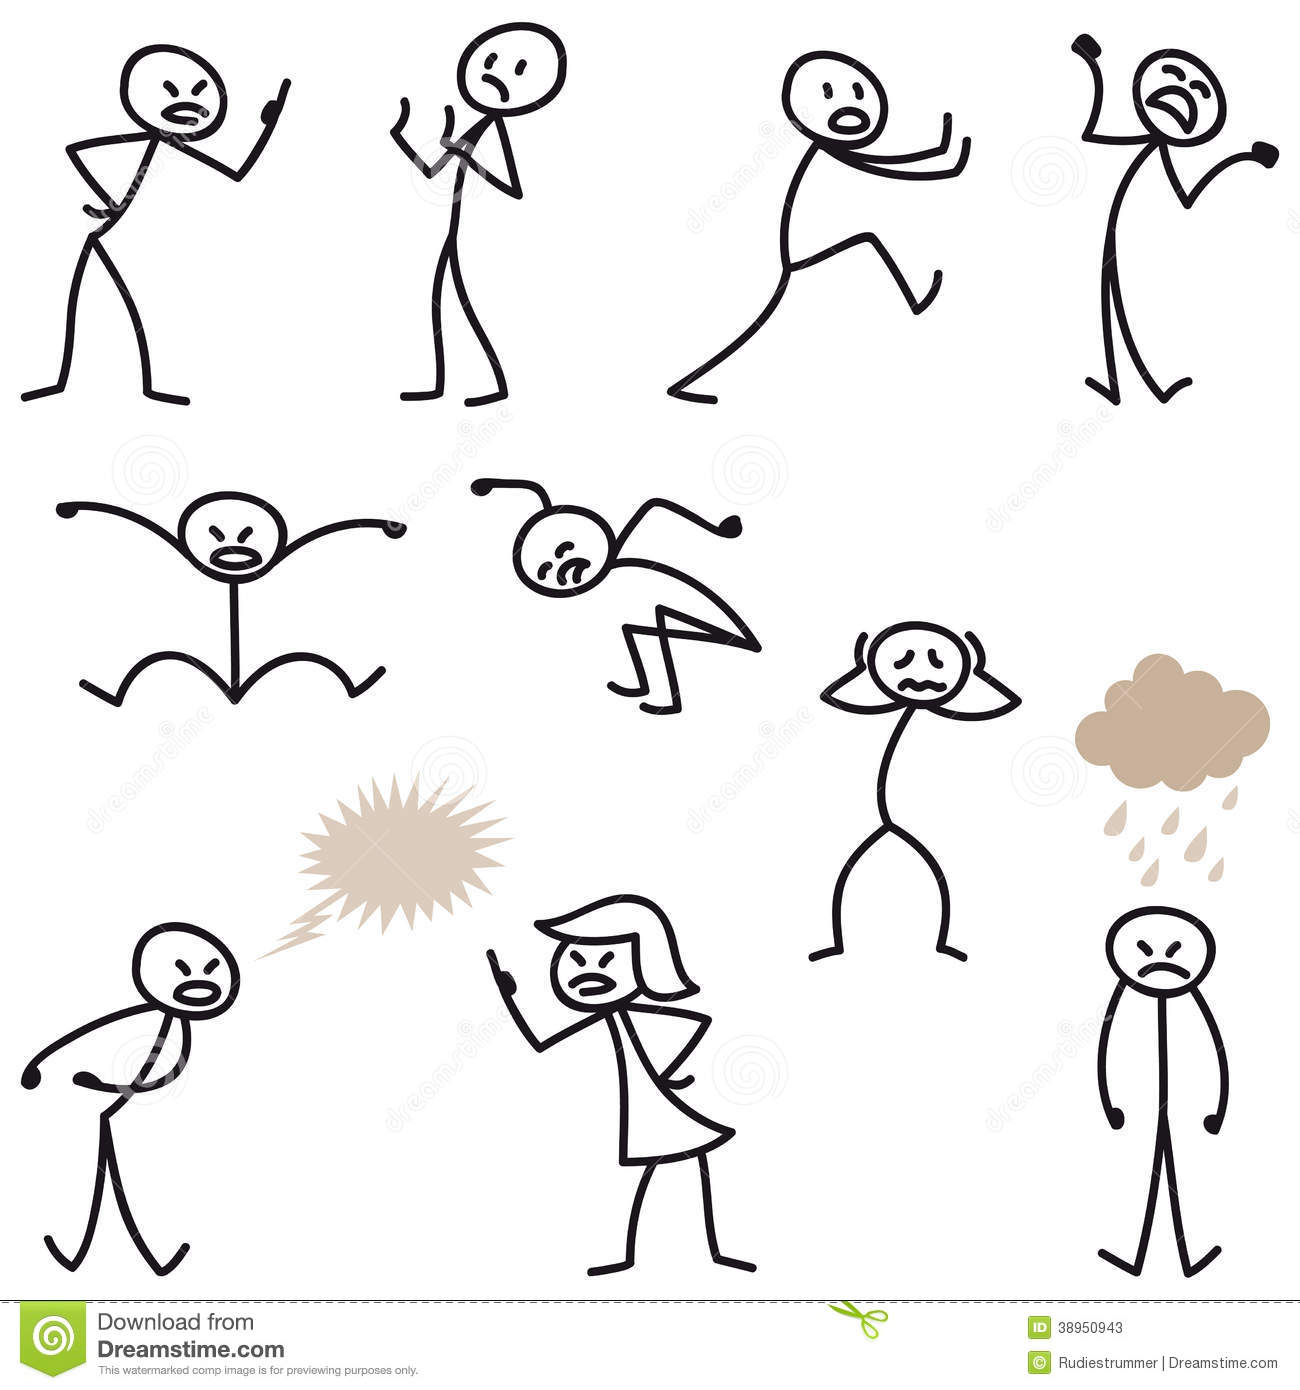 Stick Man Stick Figures Angry Bad Tempered Upset Stock Vector